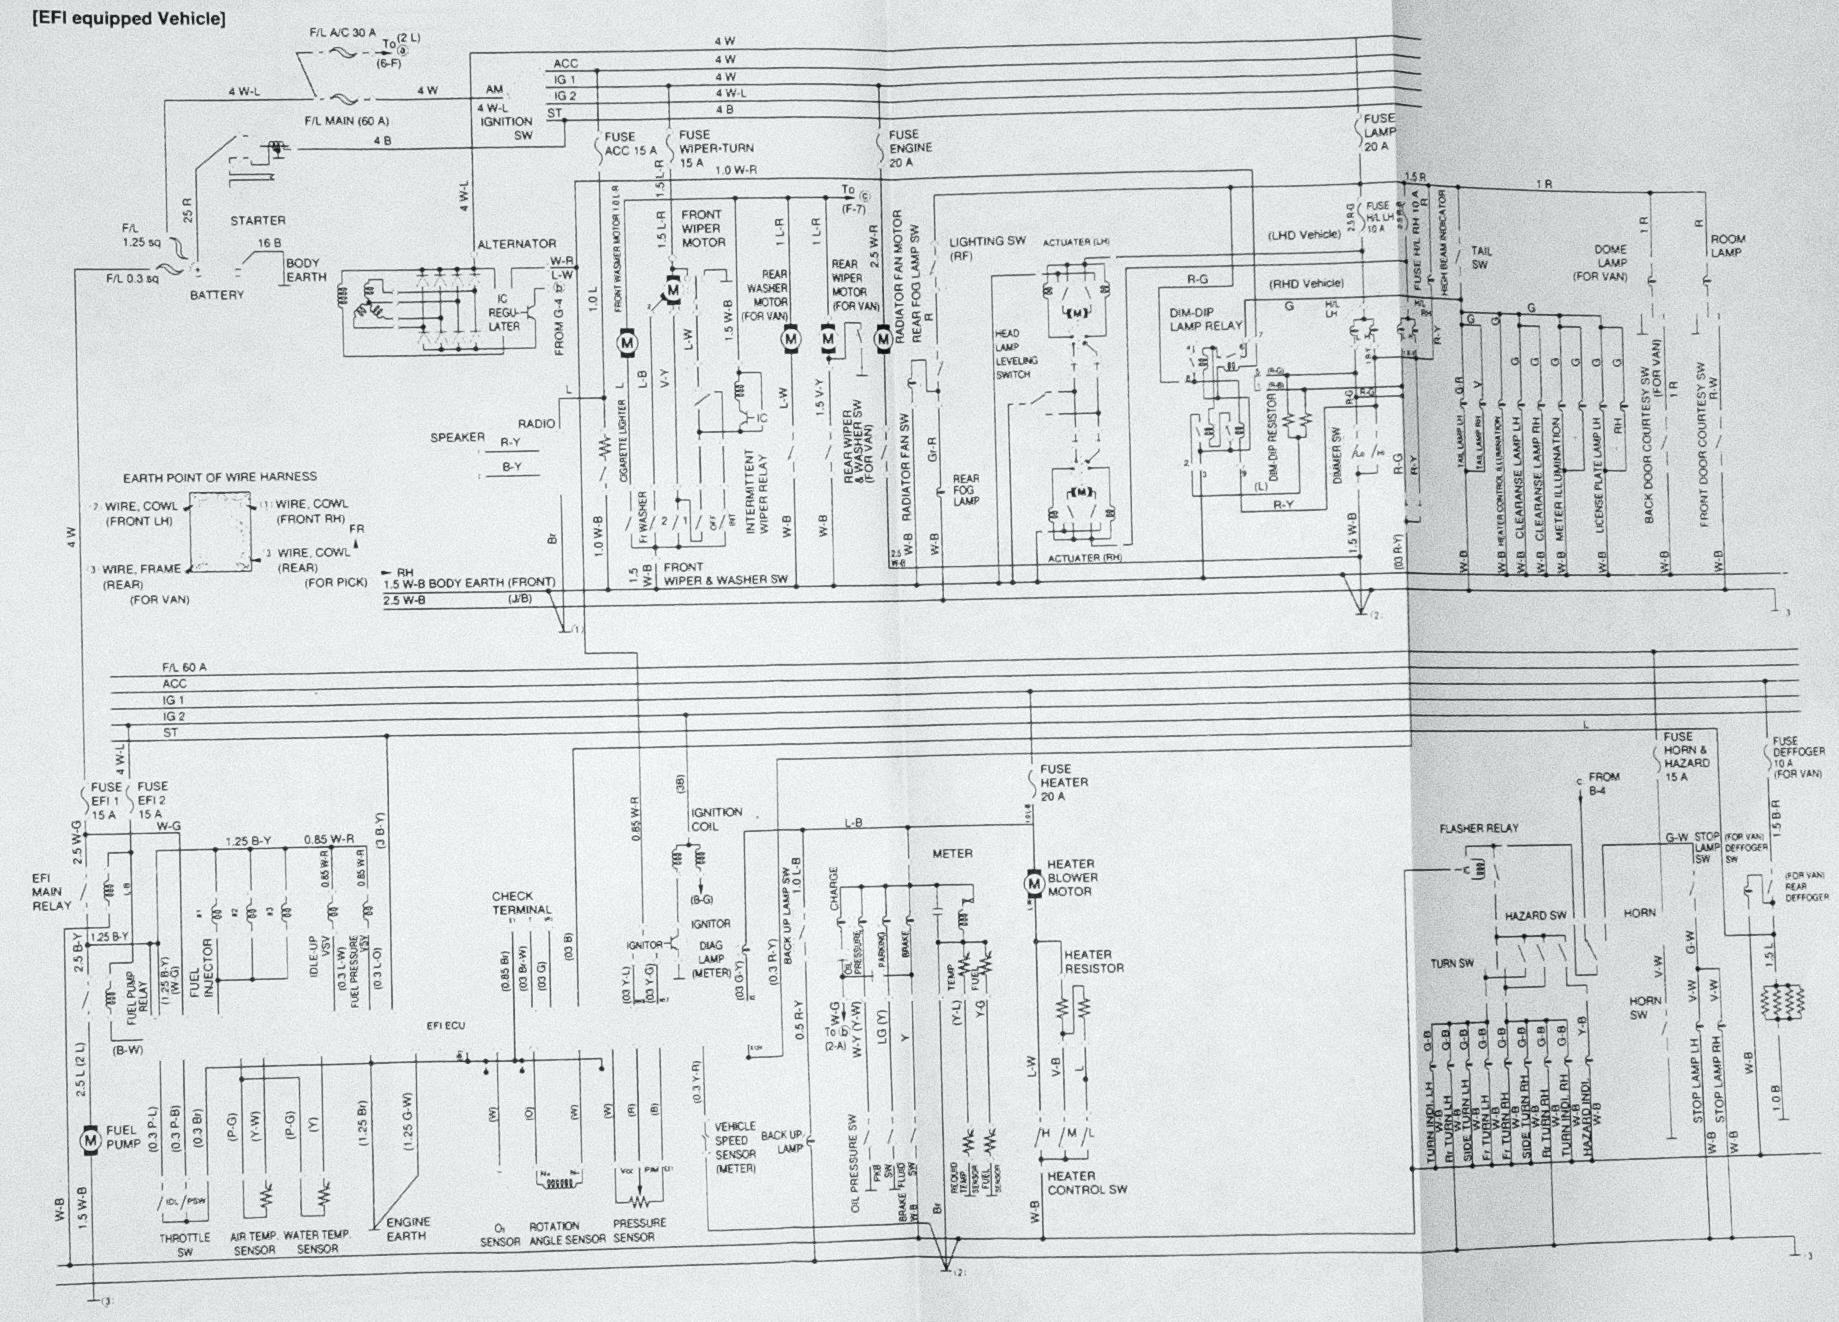 Taft Tractor Wiring Diagram Diagrams House Symbols Daihatsu Sirion Electrical U2022 Rh Maxturner Co Basic